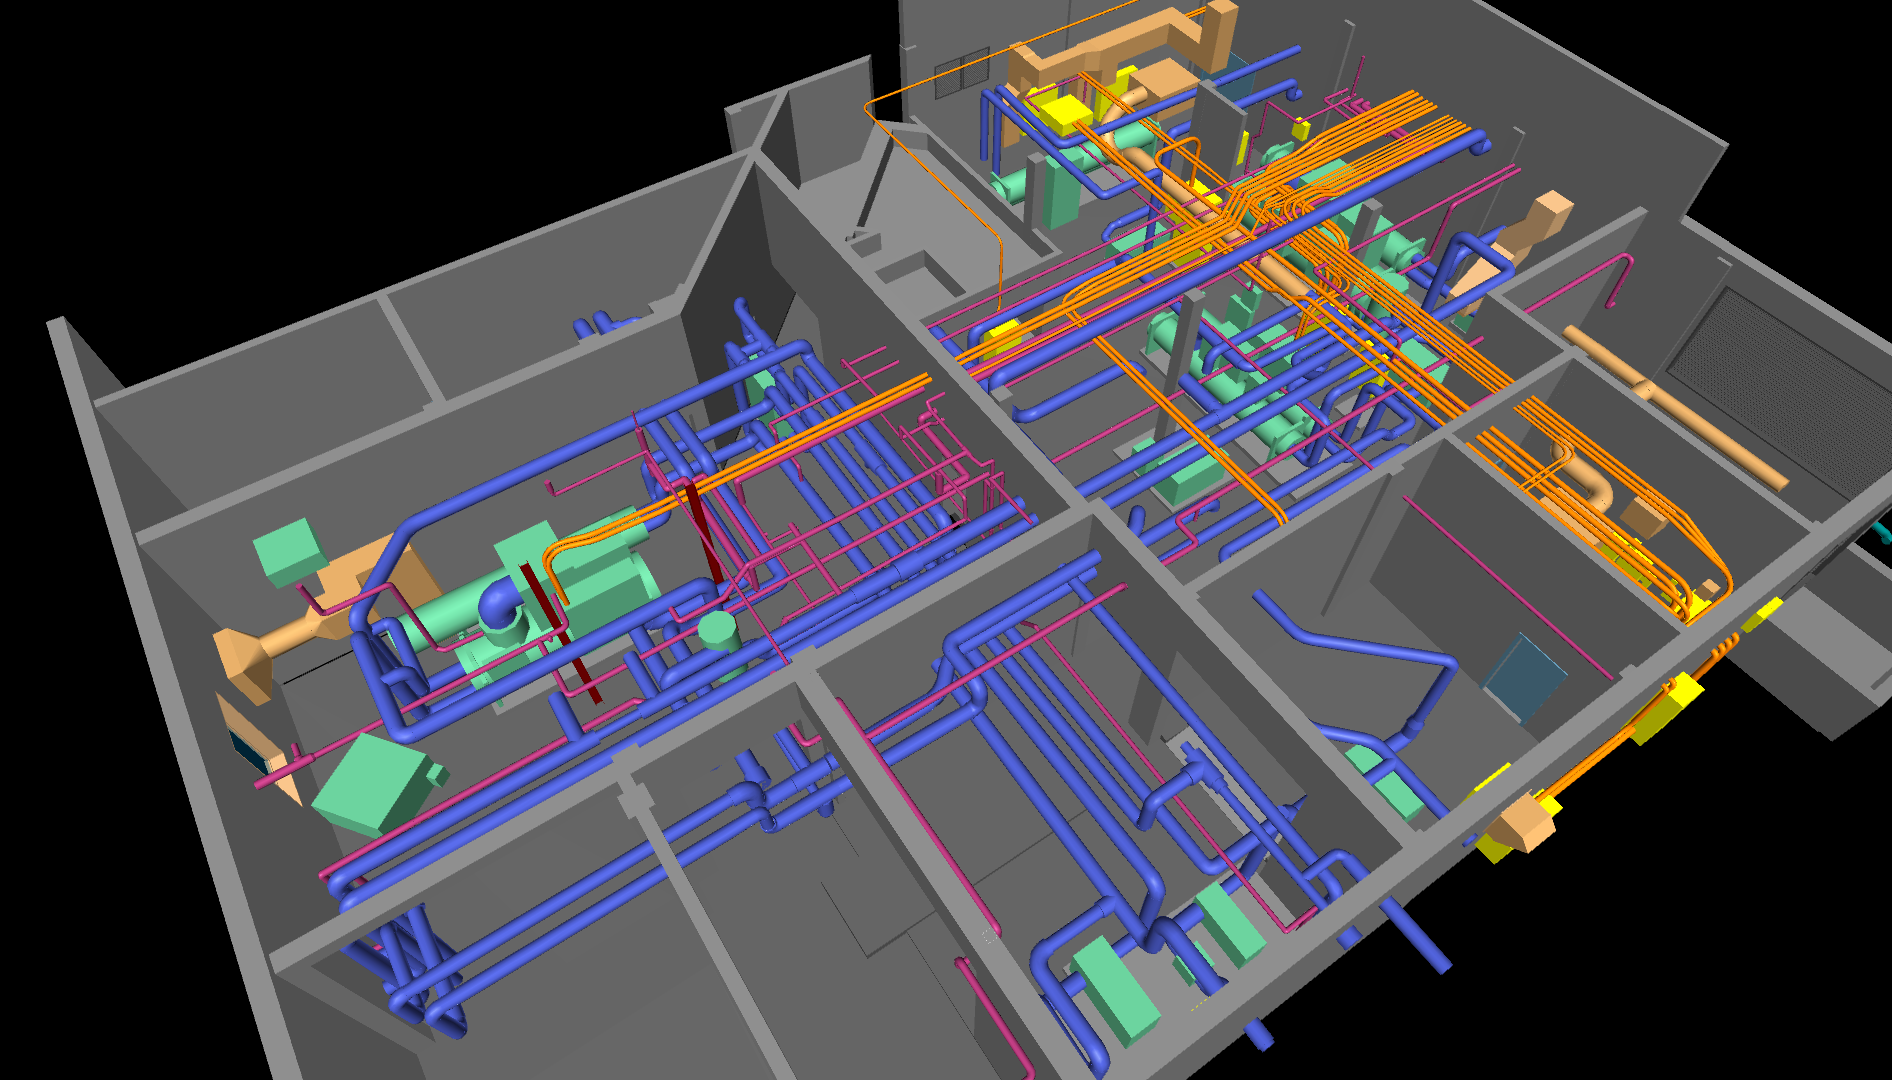 3d Scan To Cad Services Rogue Visual Design Plumbing Diagram Software The Team Can Develop Models From Point Cloud We Have Clients Utilizing Numerous Different Systems And